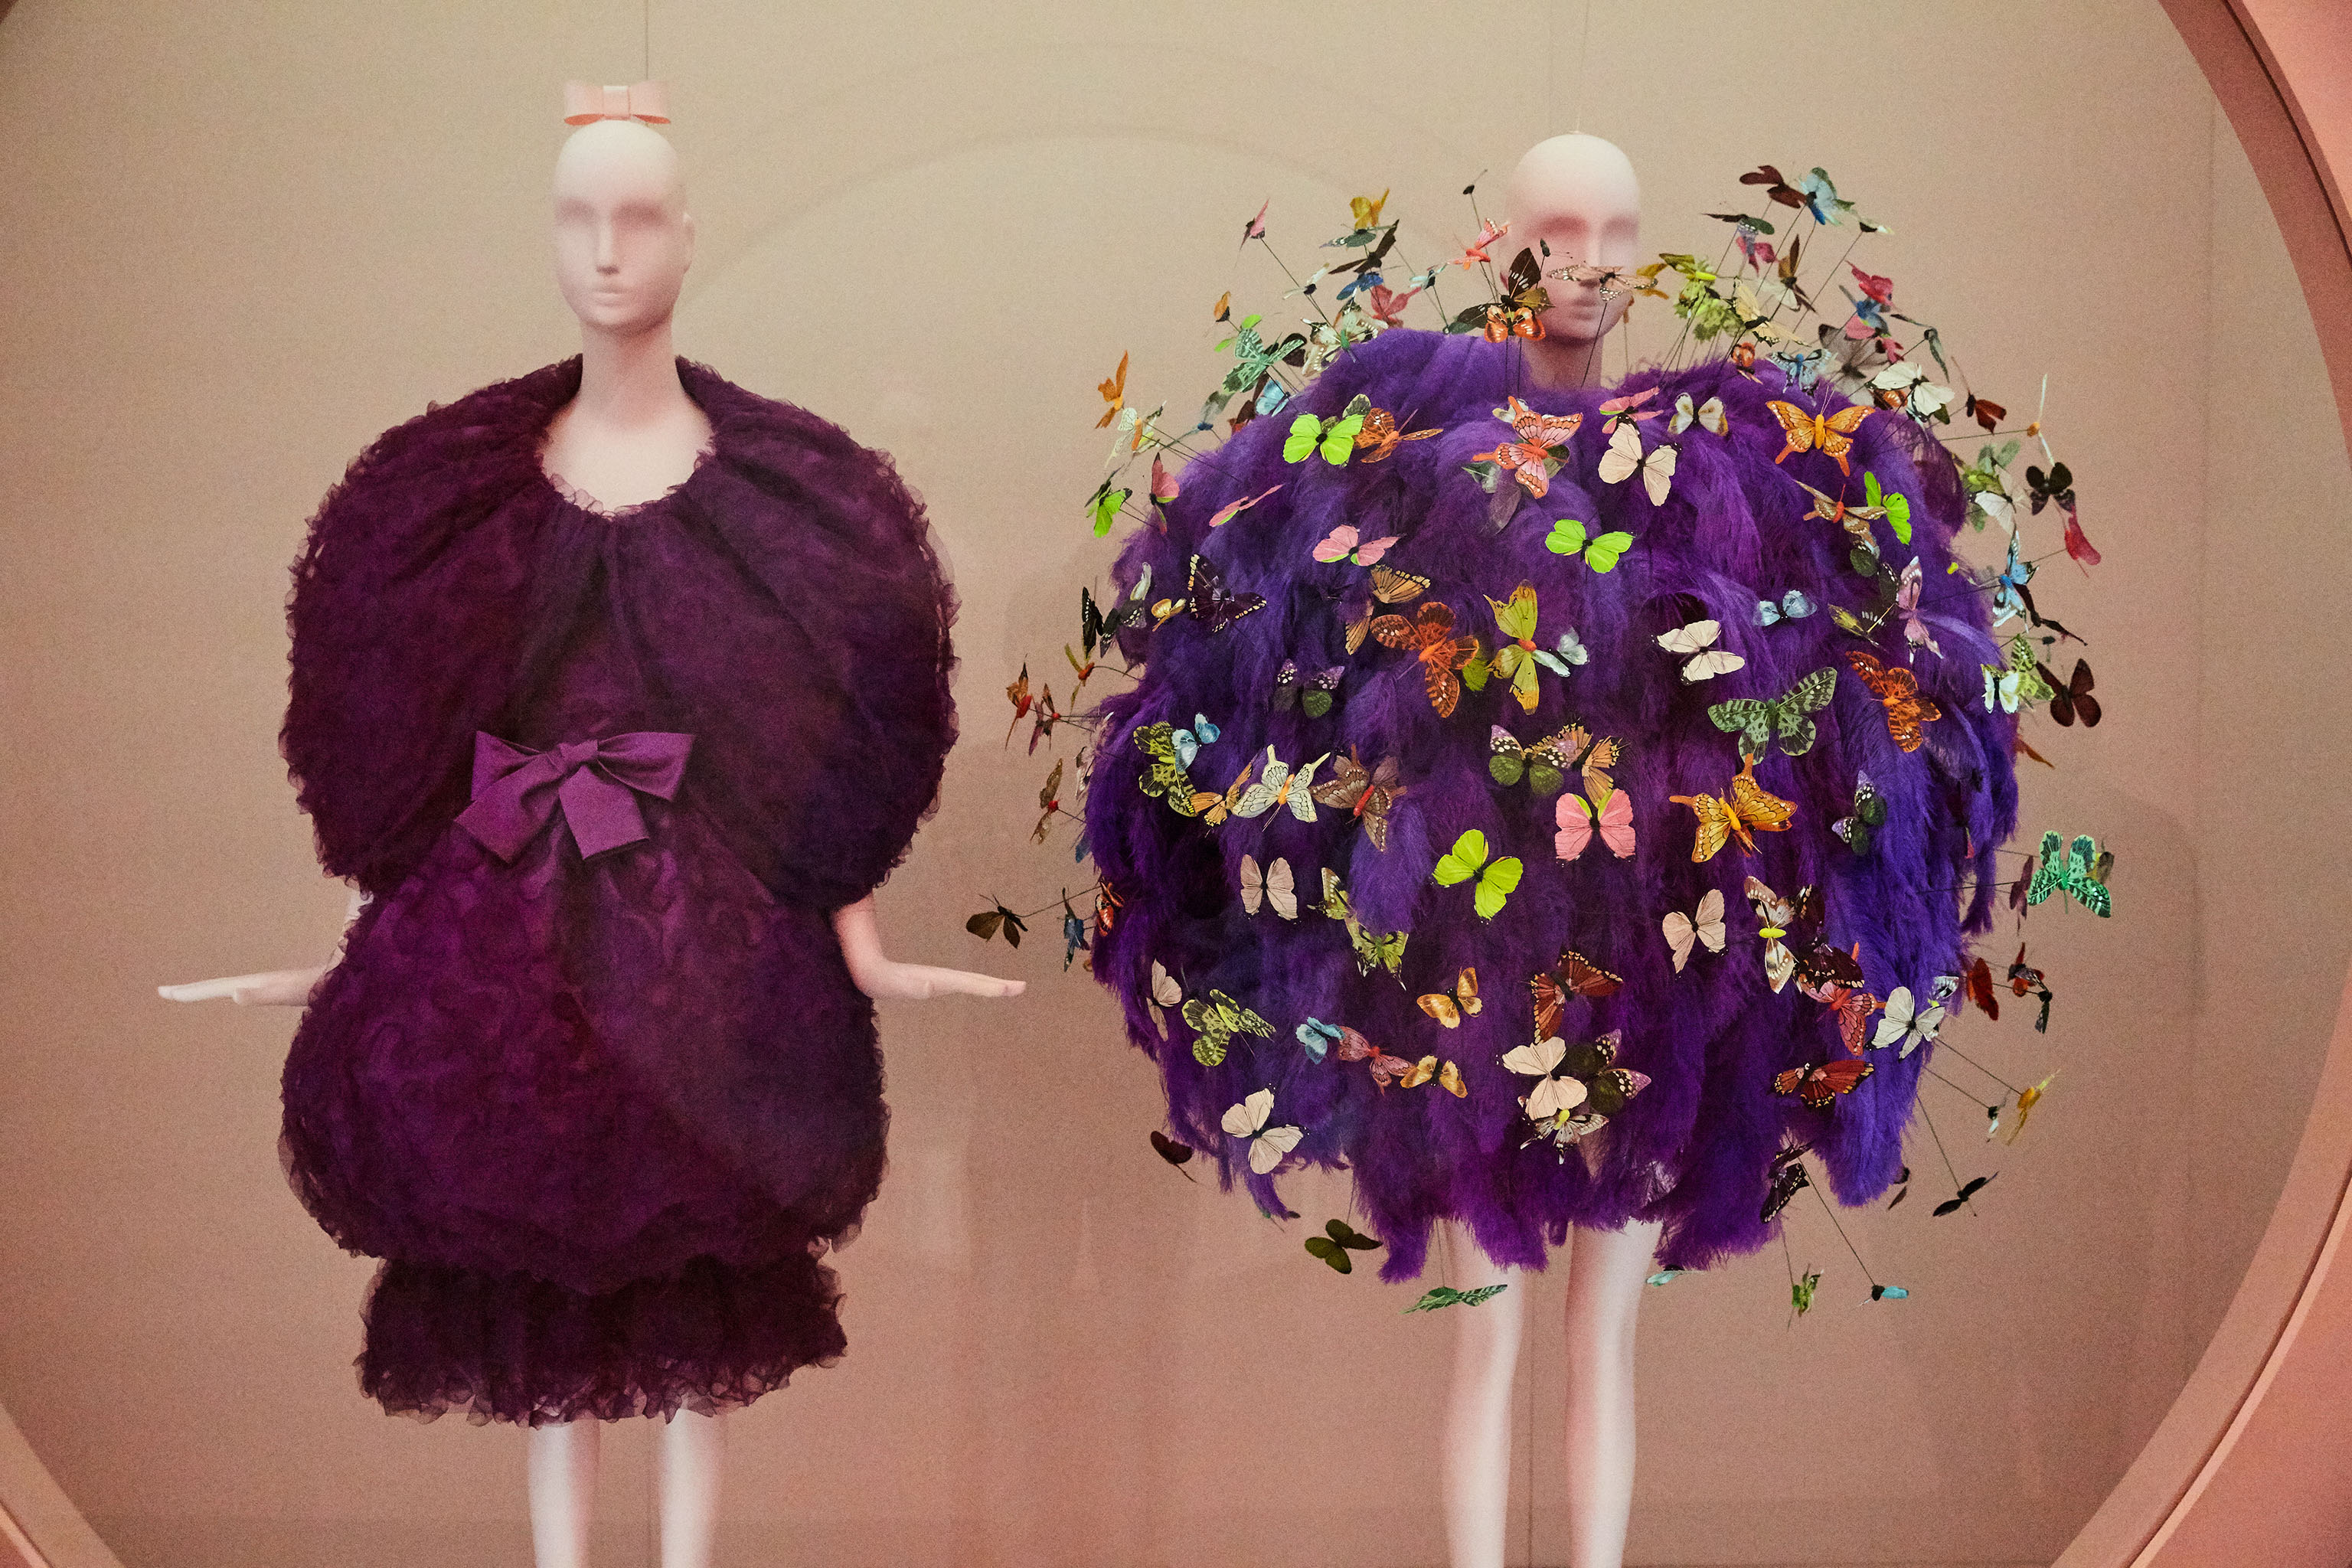 A Cristóbal Balenciaga evening ensemble from fall 1961 and a fall 2018 one from Jeremy Scott for Moschino embroidered with purple ostrich feathers, and polychrome printed feather and paper butterflies.